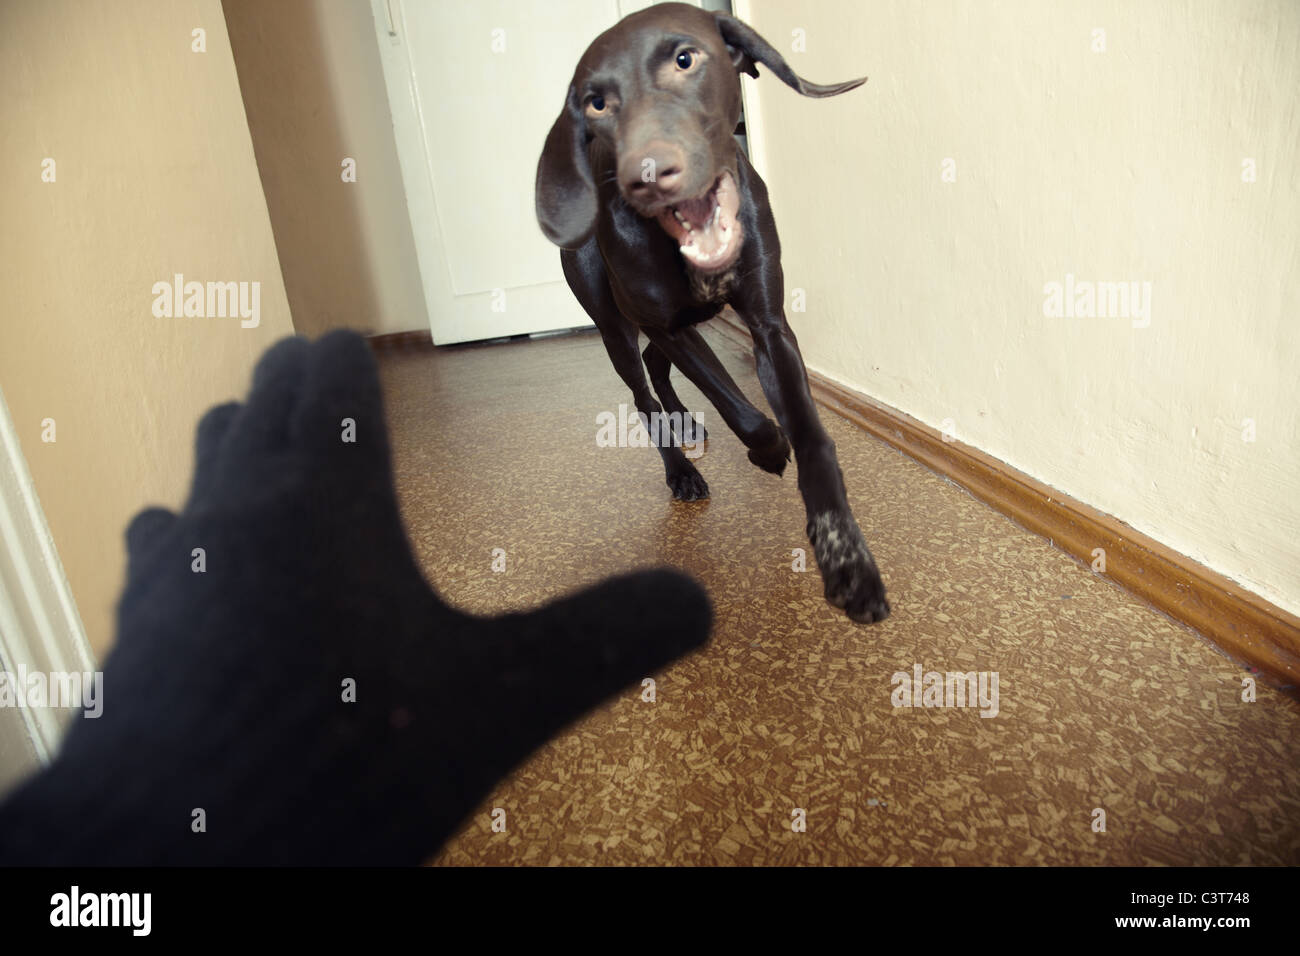 Dog attacking thief in black gloves. Natural light and colors. Motion blur added for dynamics effect - Stock Image